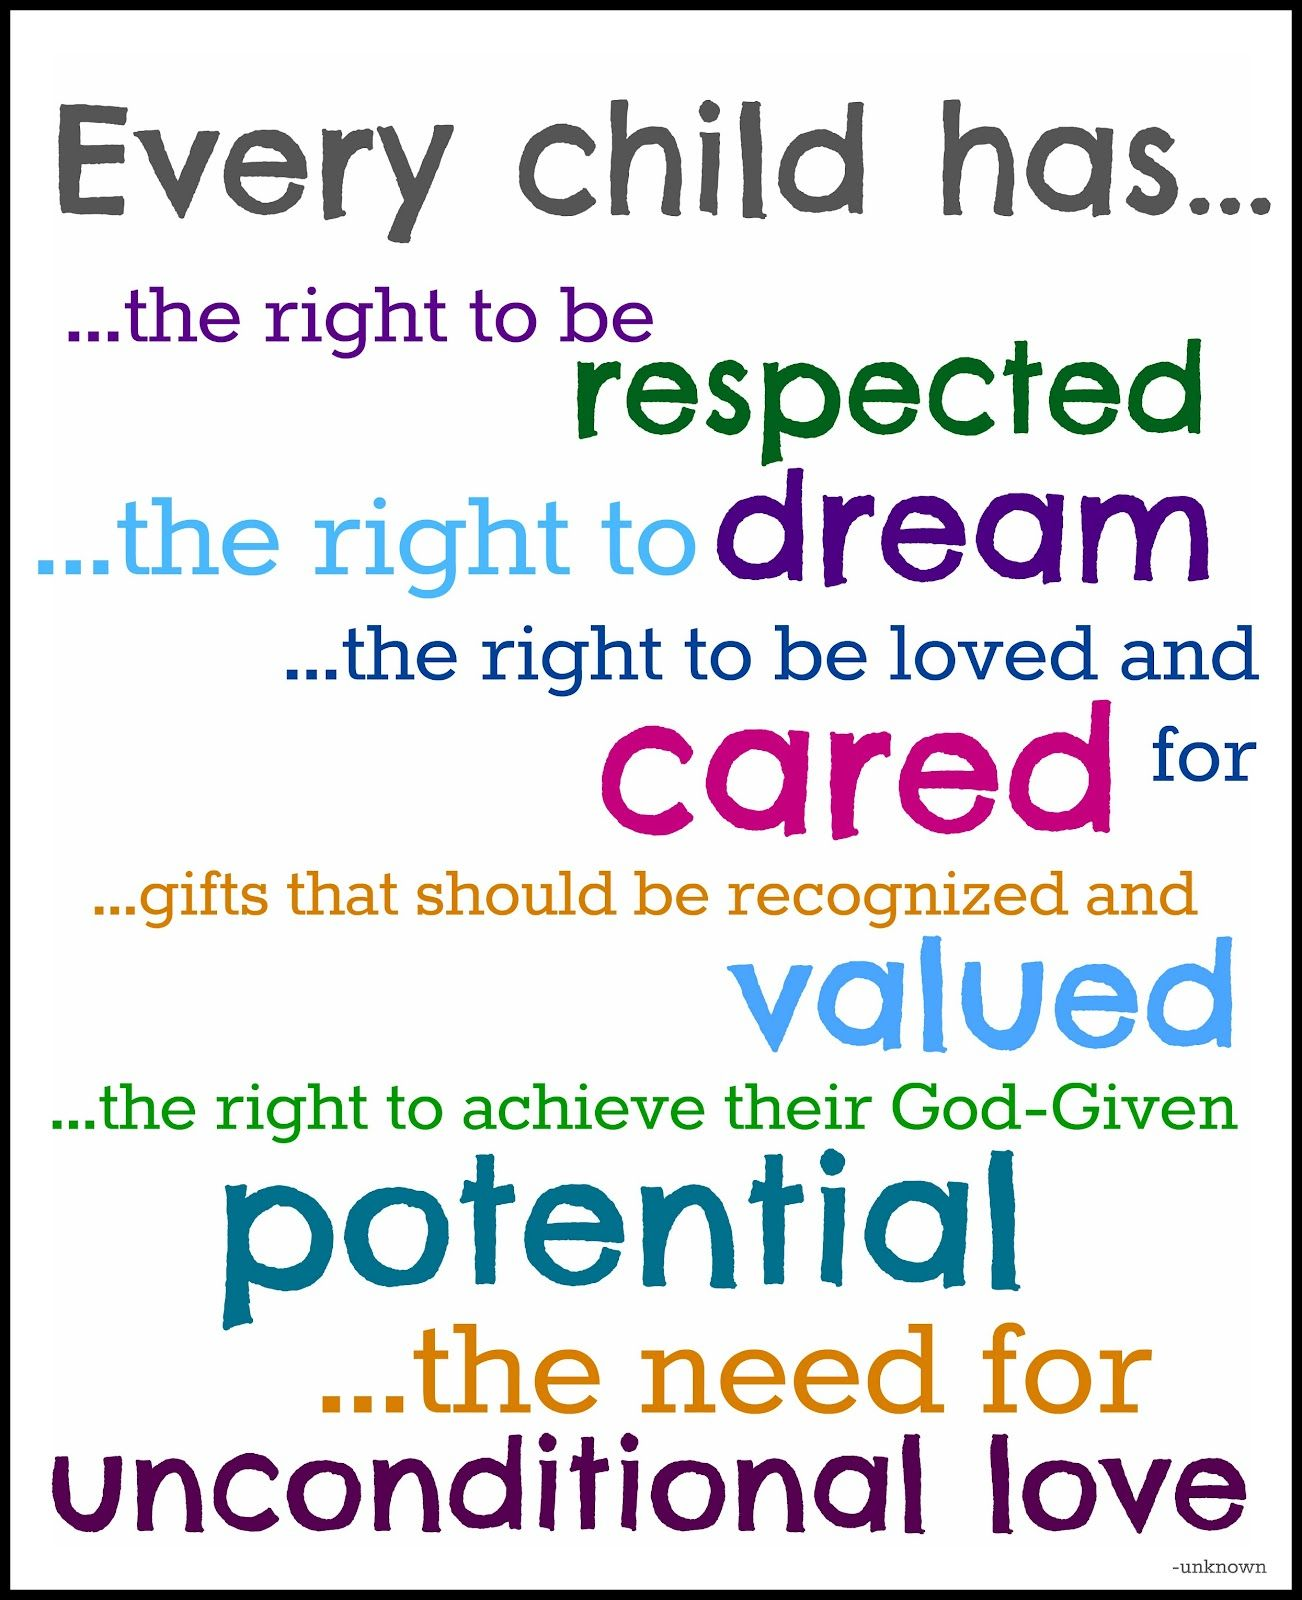 Inspirational Quotes About Loving Children Crayonfreckles Every Child Has.printable Crayonfreckles